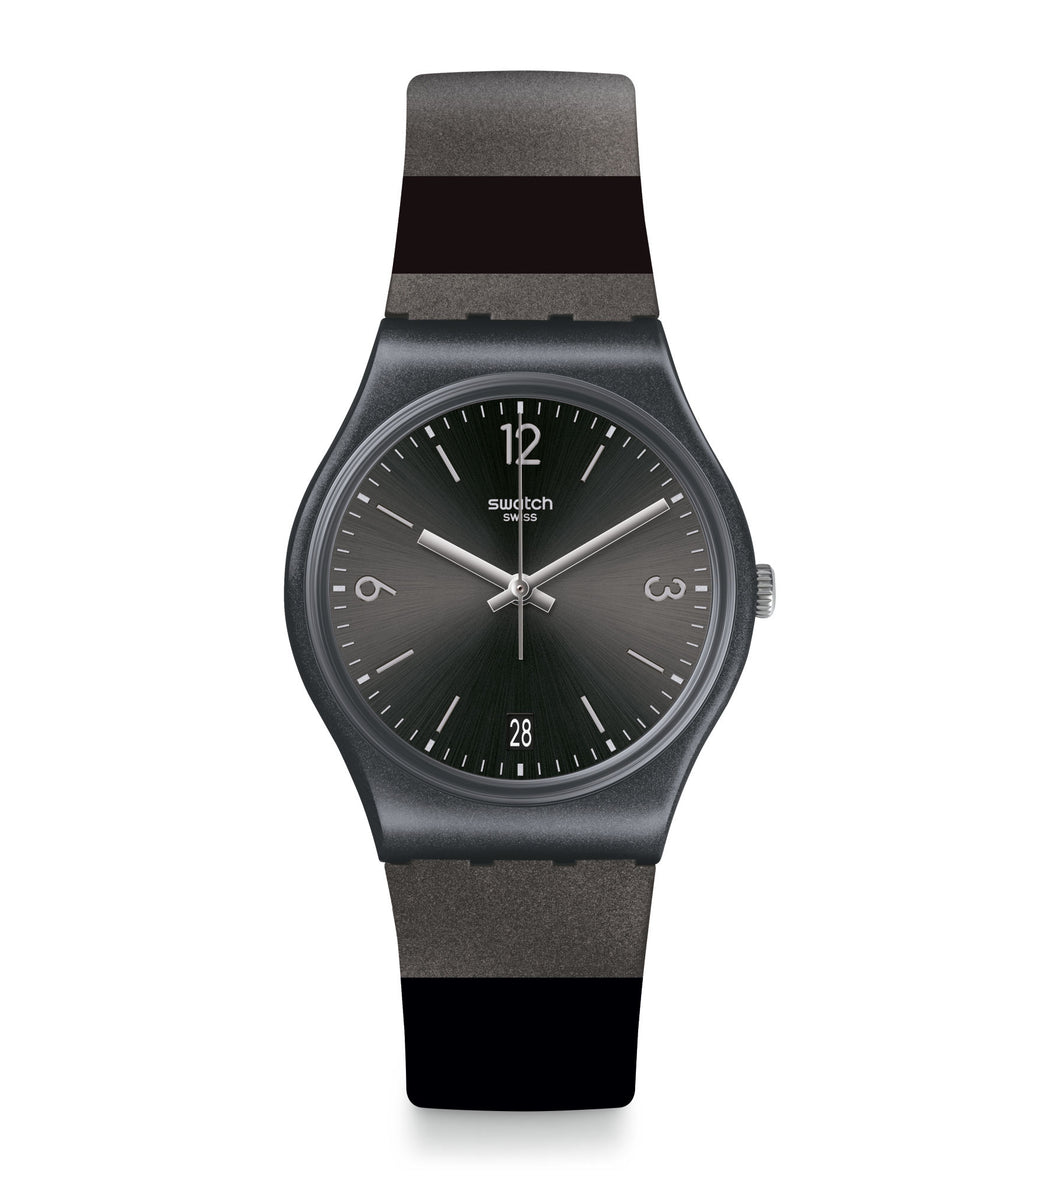 Swatch Blackeralda GB430